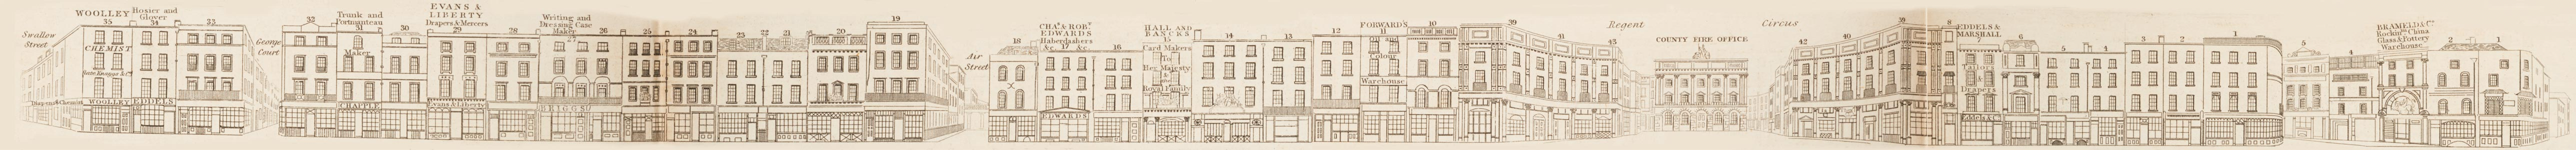 map - Tallis's London street views : No. 25. Piccadilly, division 1 (north)